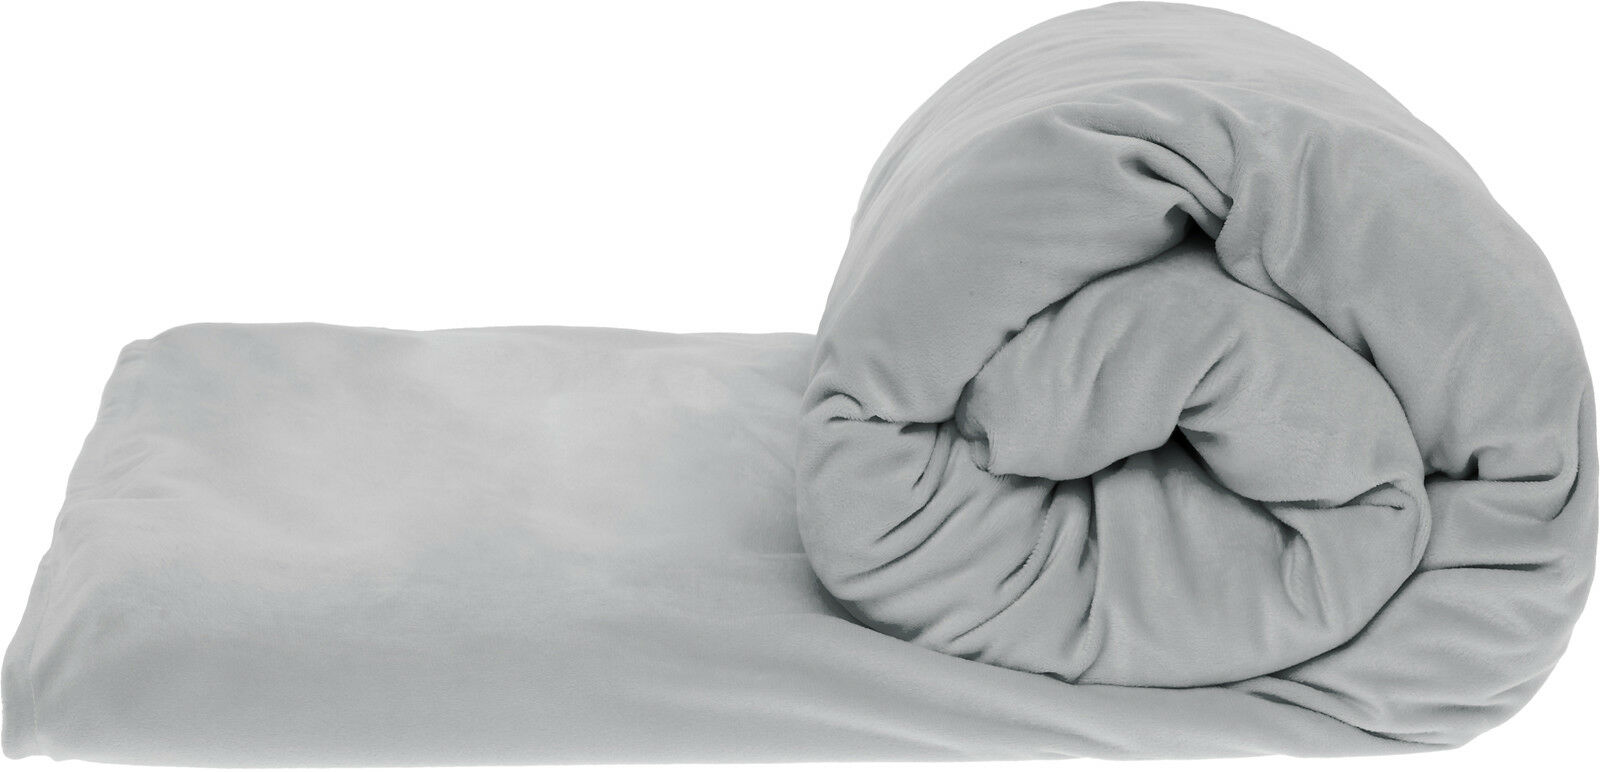 Mindful Design Adult Weighted Sensory Blanket w  Minky Cover